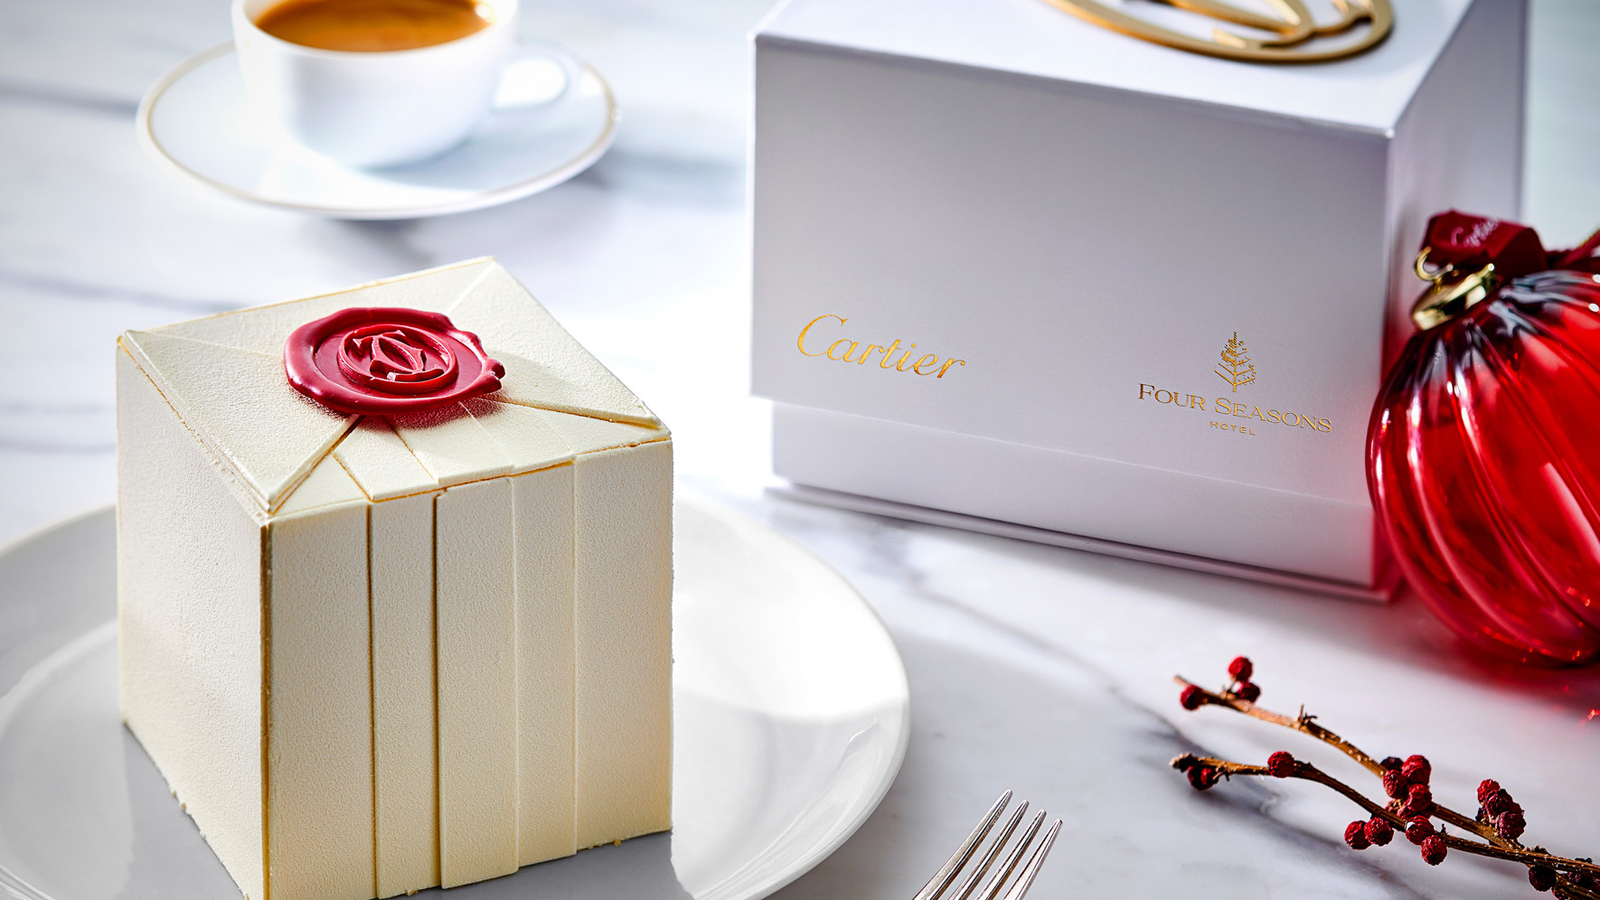 Four Seasons Hotel Seoul and Cartier Team Up for Festive Charitable ...